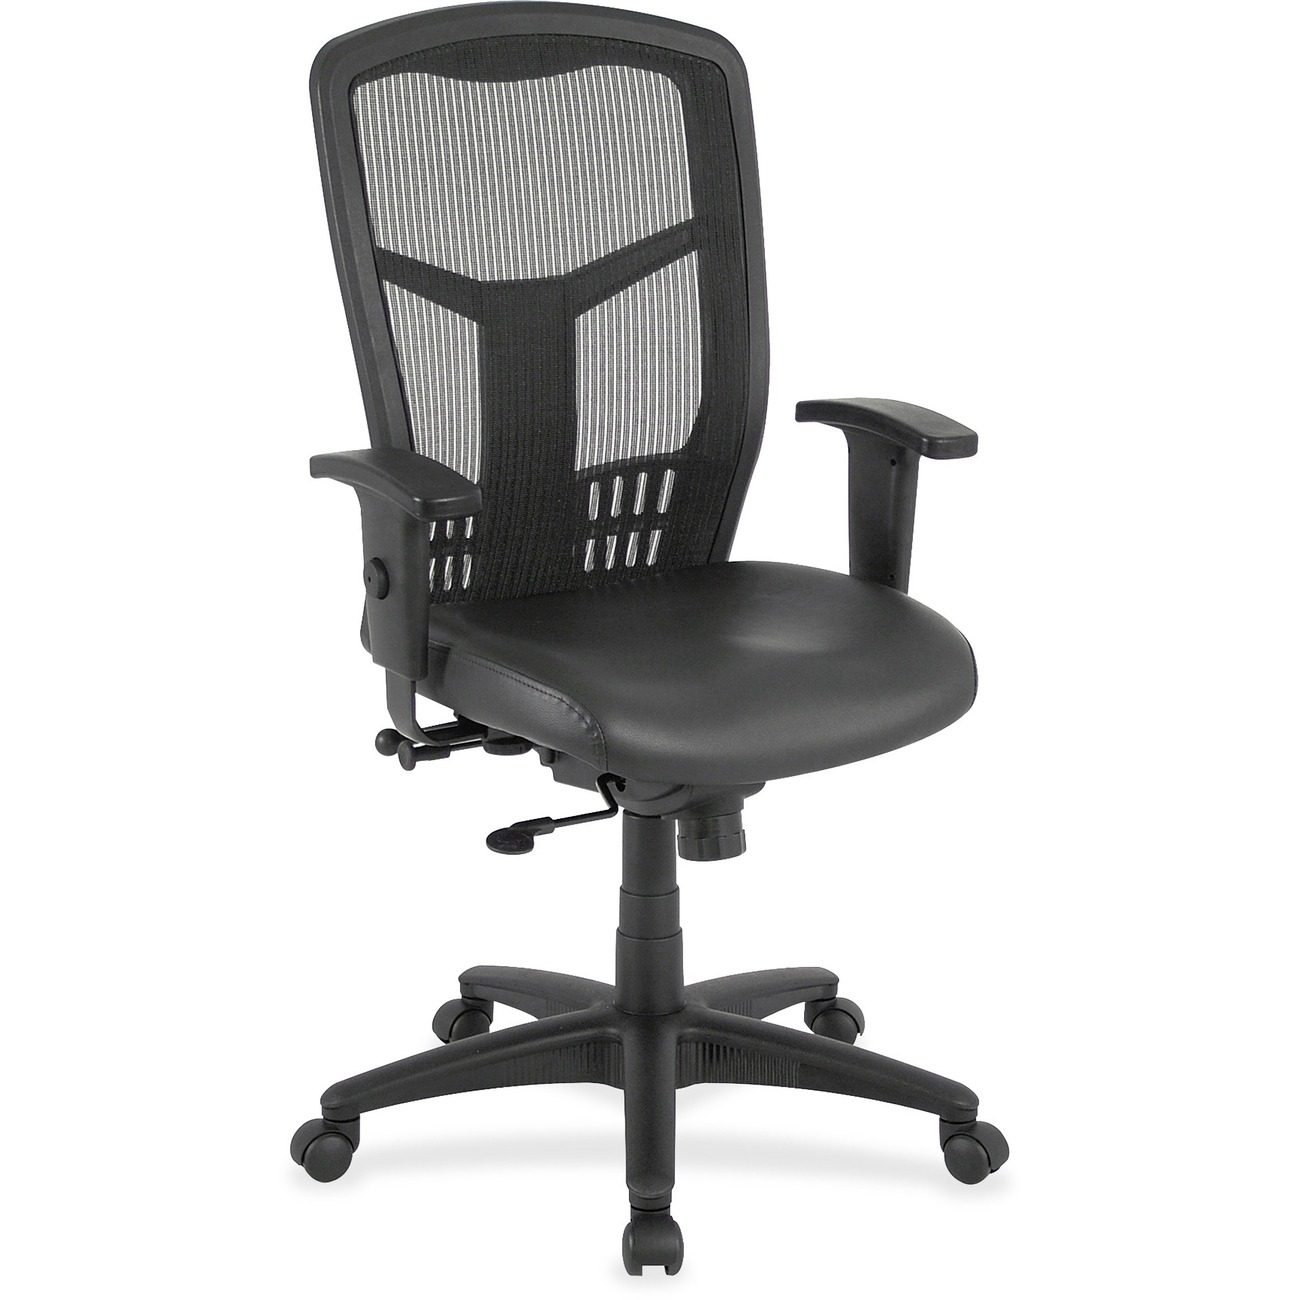 executive chair accessories personalized childrens west coast office supplies furniture chairs